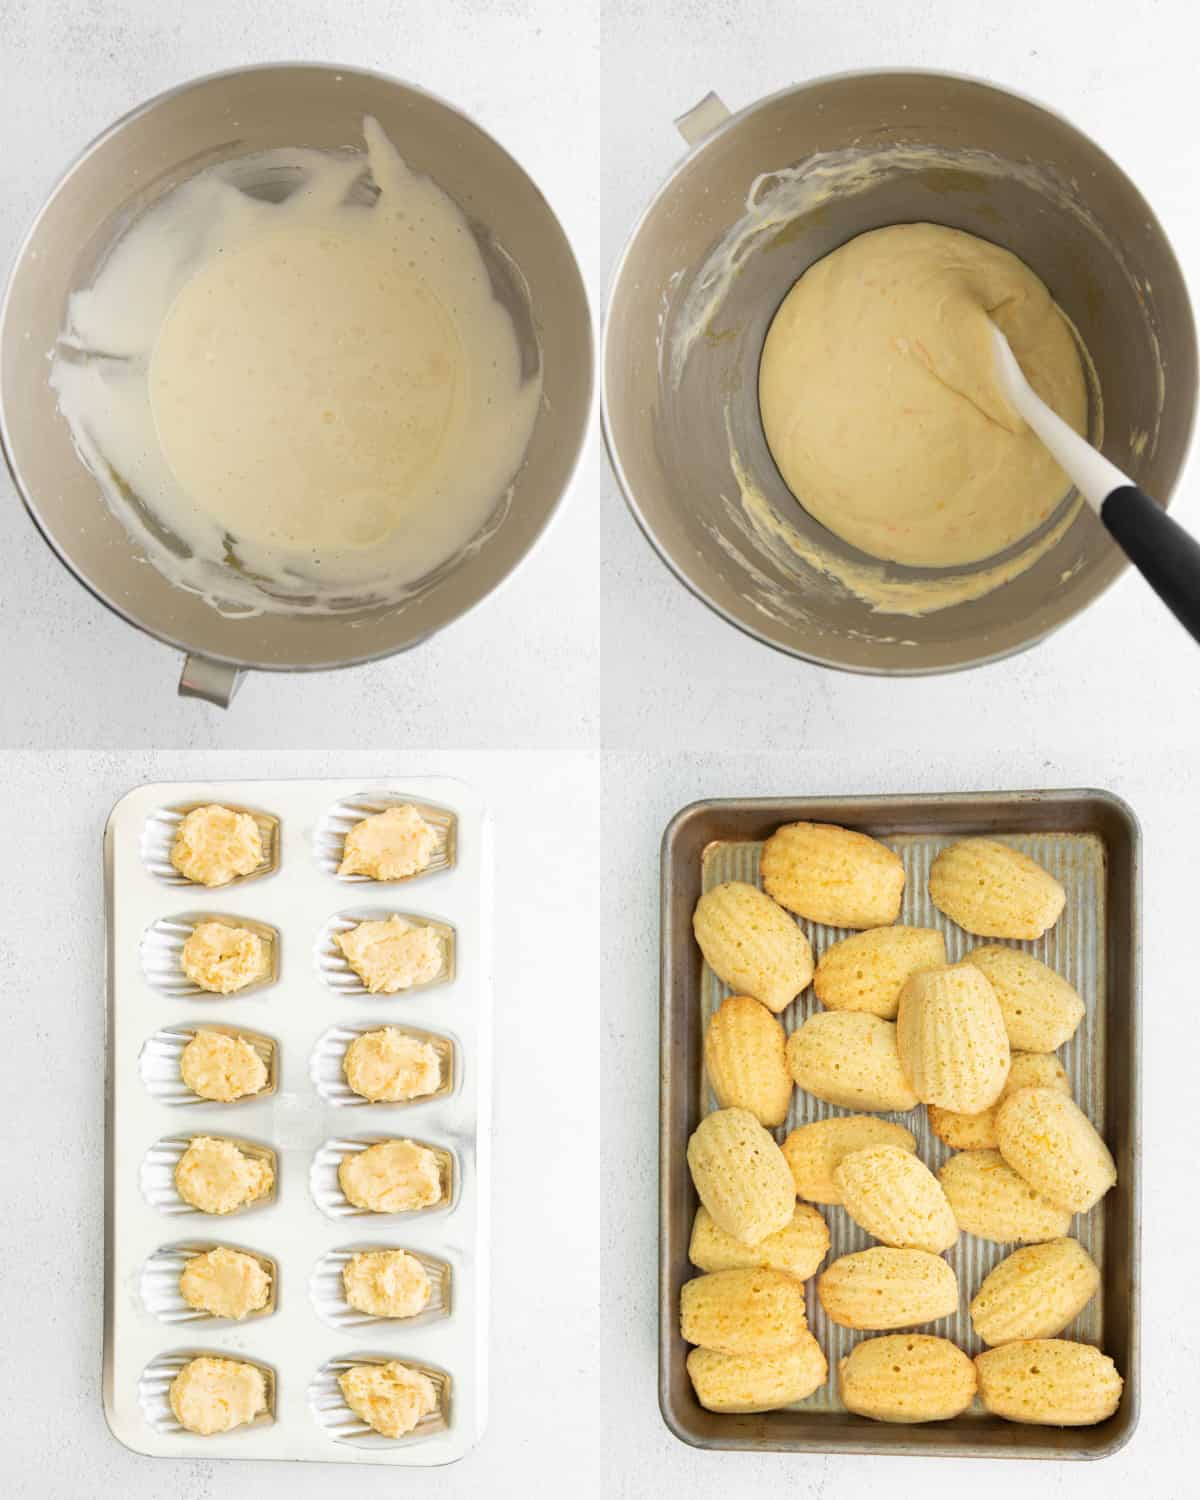 mixing together ingredients for cookies in metal bowl